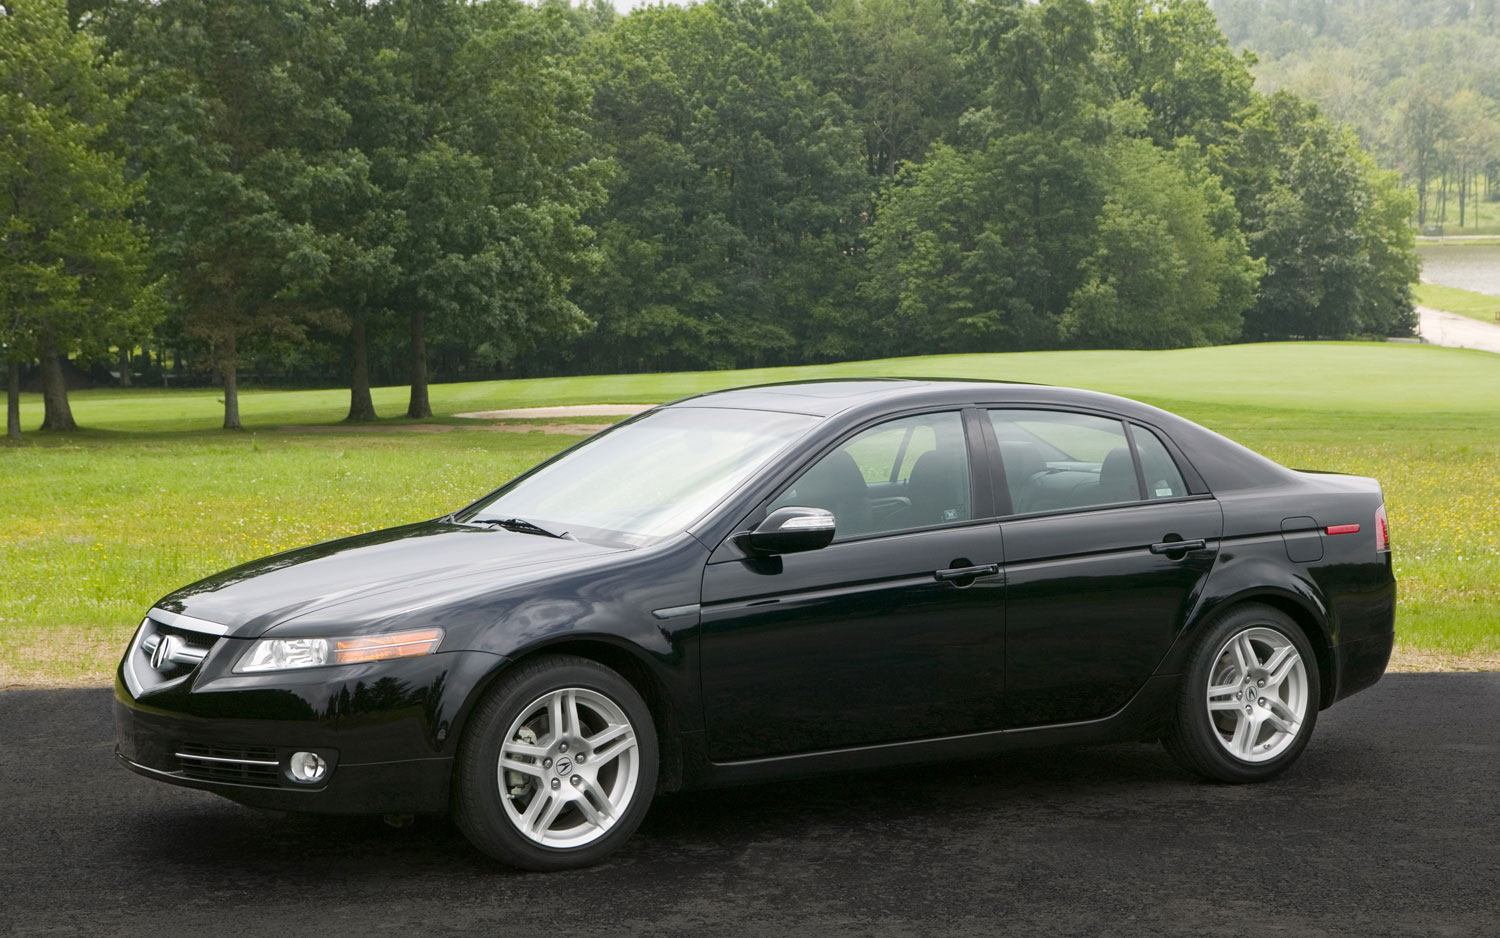 2008 Acura TL Front1